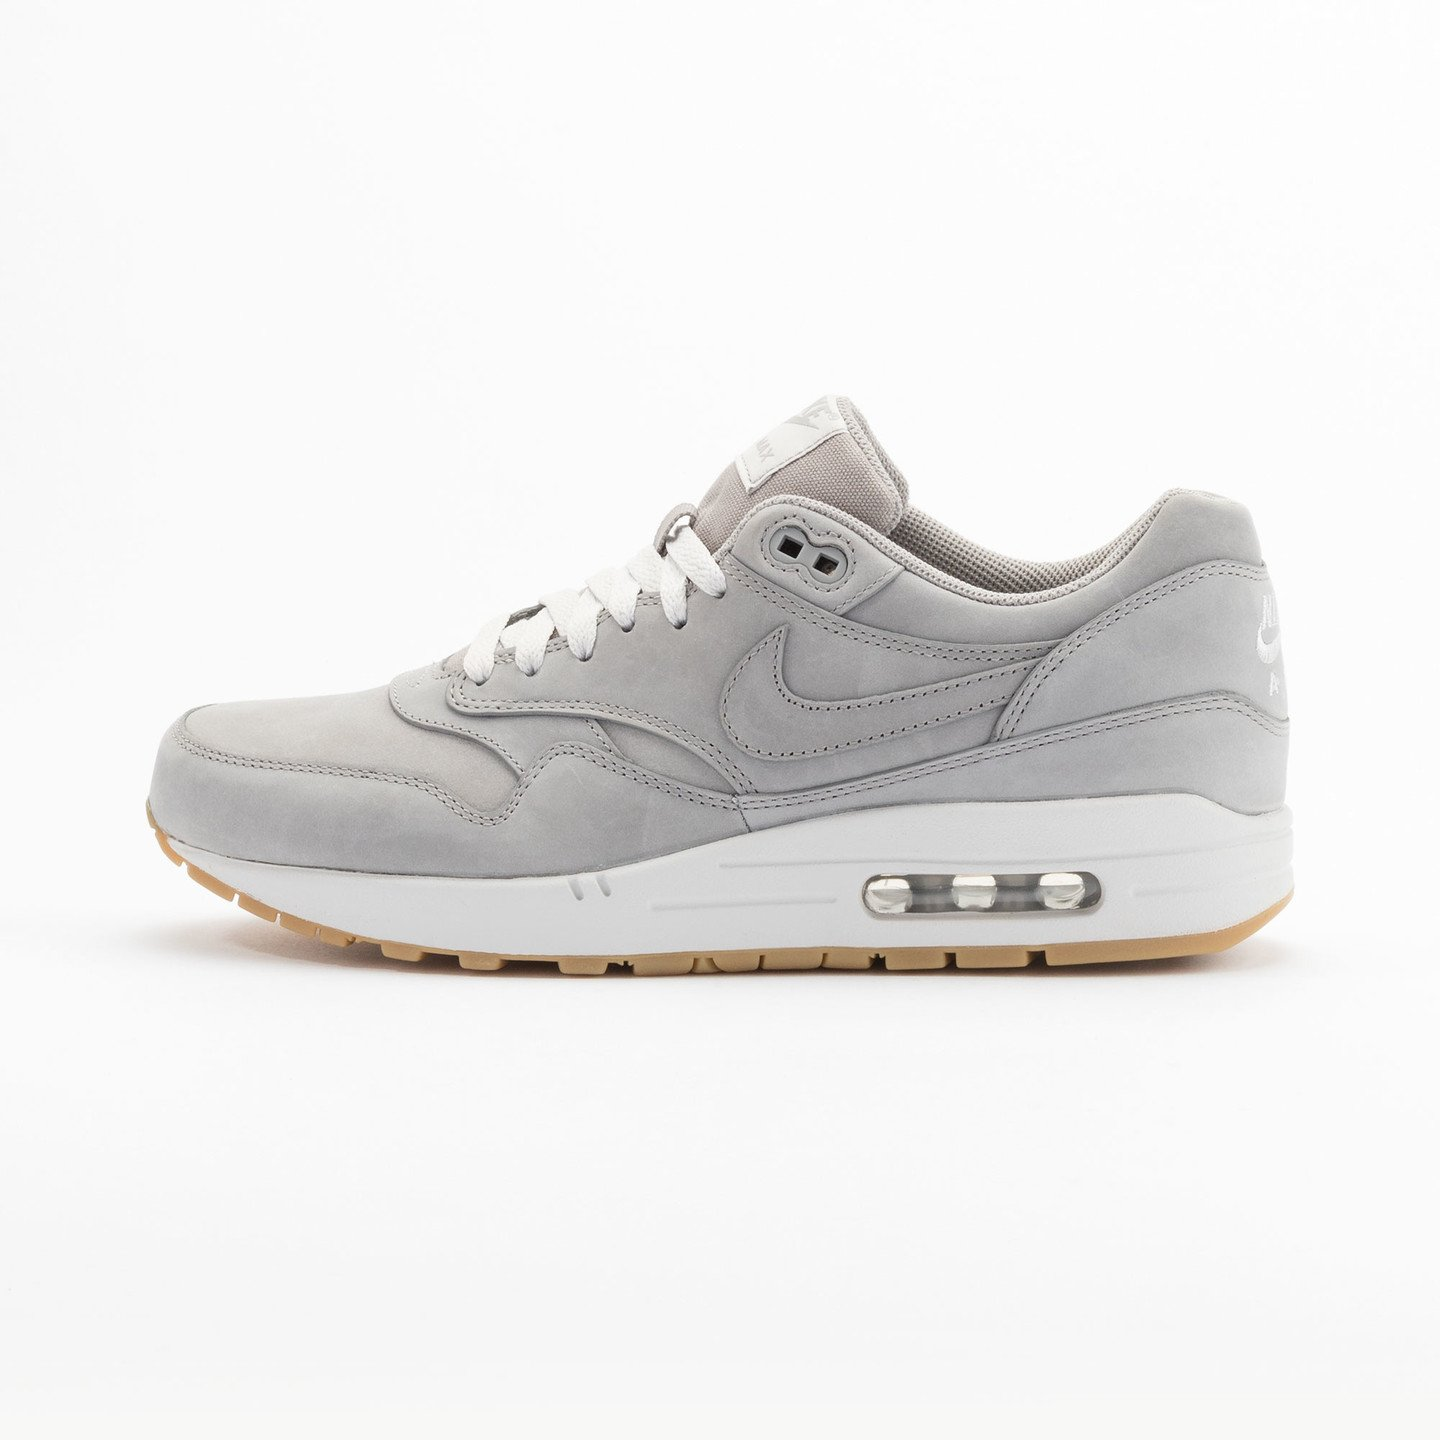 Nike Air Max Leather Premium Medium Grey 705282-005-47.5